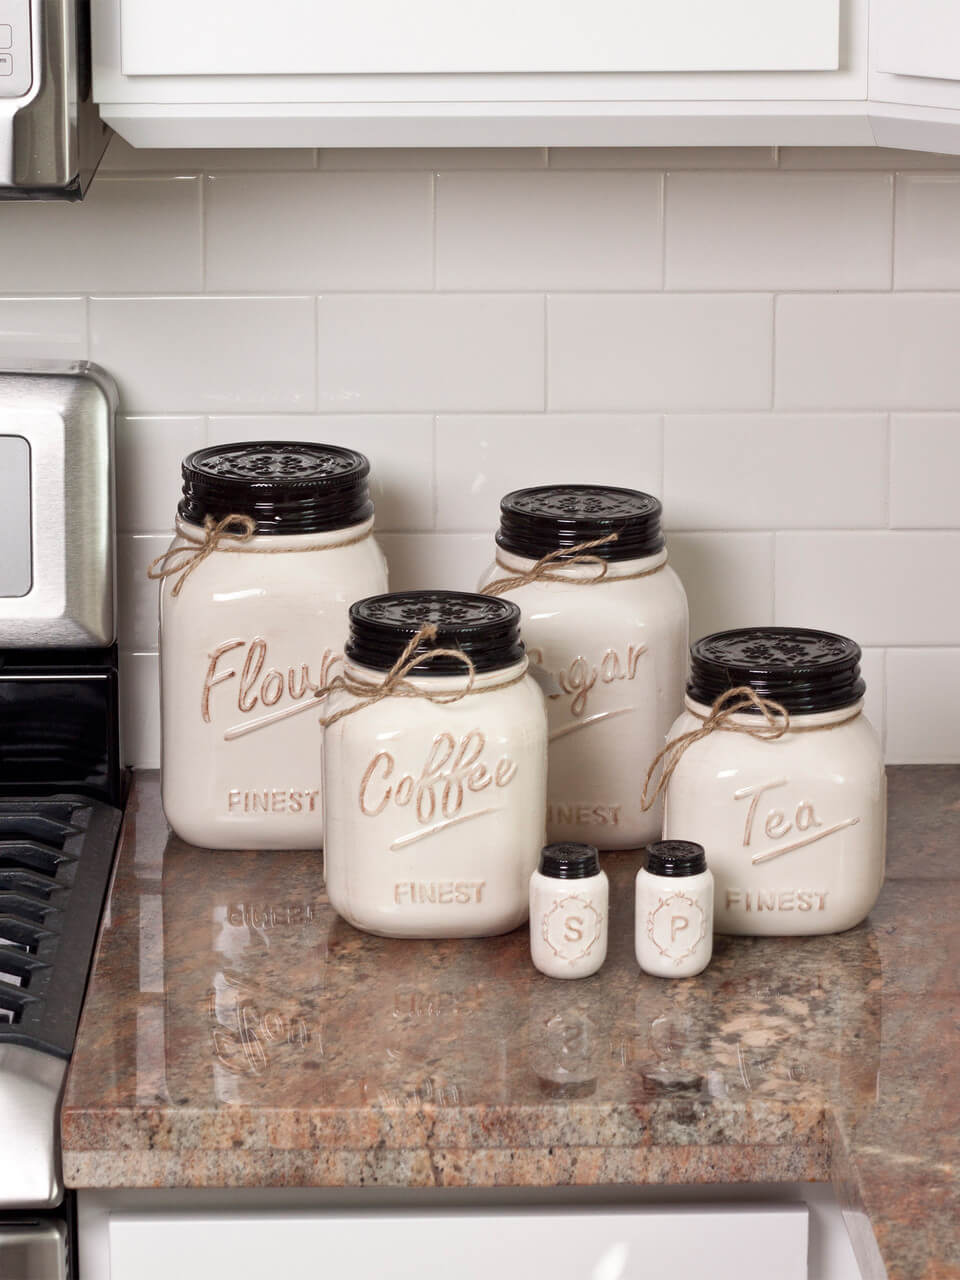 Off White Canister Mason Jars | Inspiring Farmhouse Kitchen Design & Decor Ideas